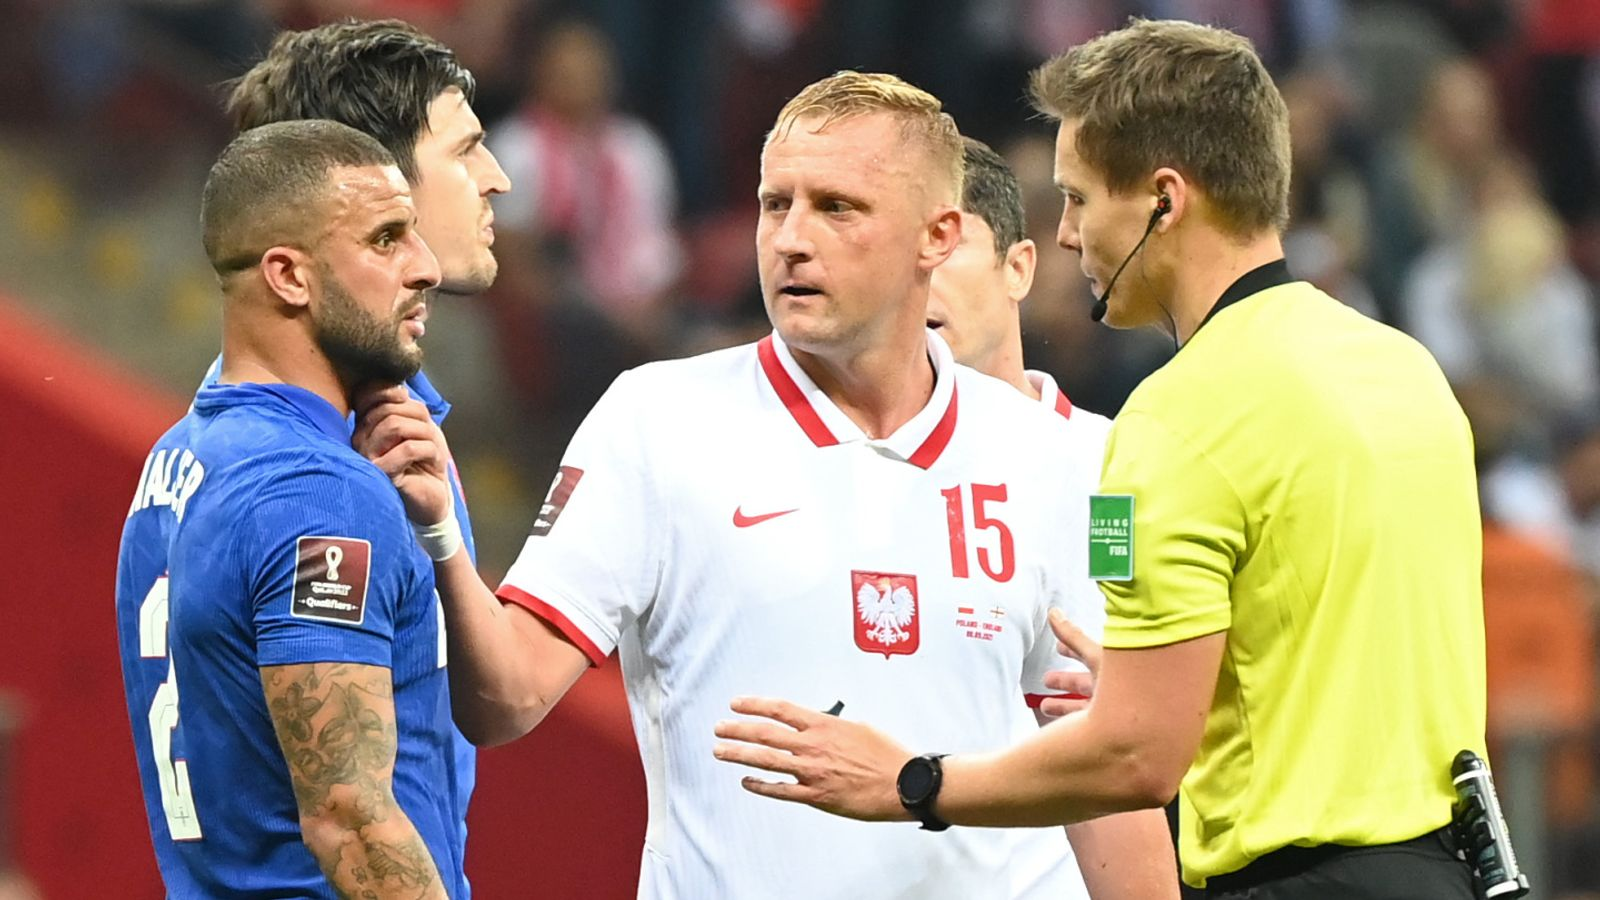 Kamil Glik and Kyle Walker's clash will not be subject to further investigation